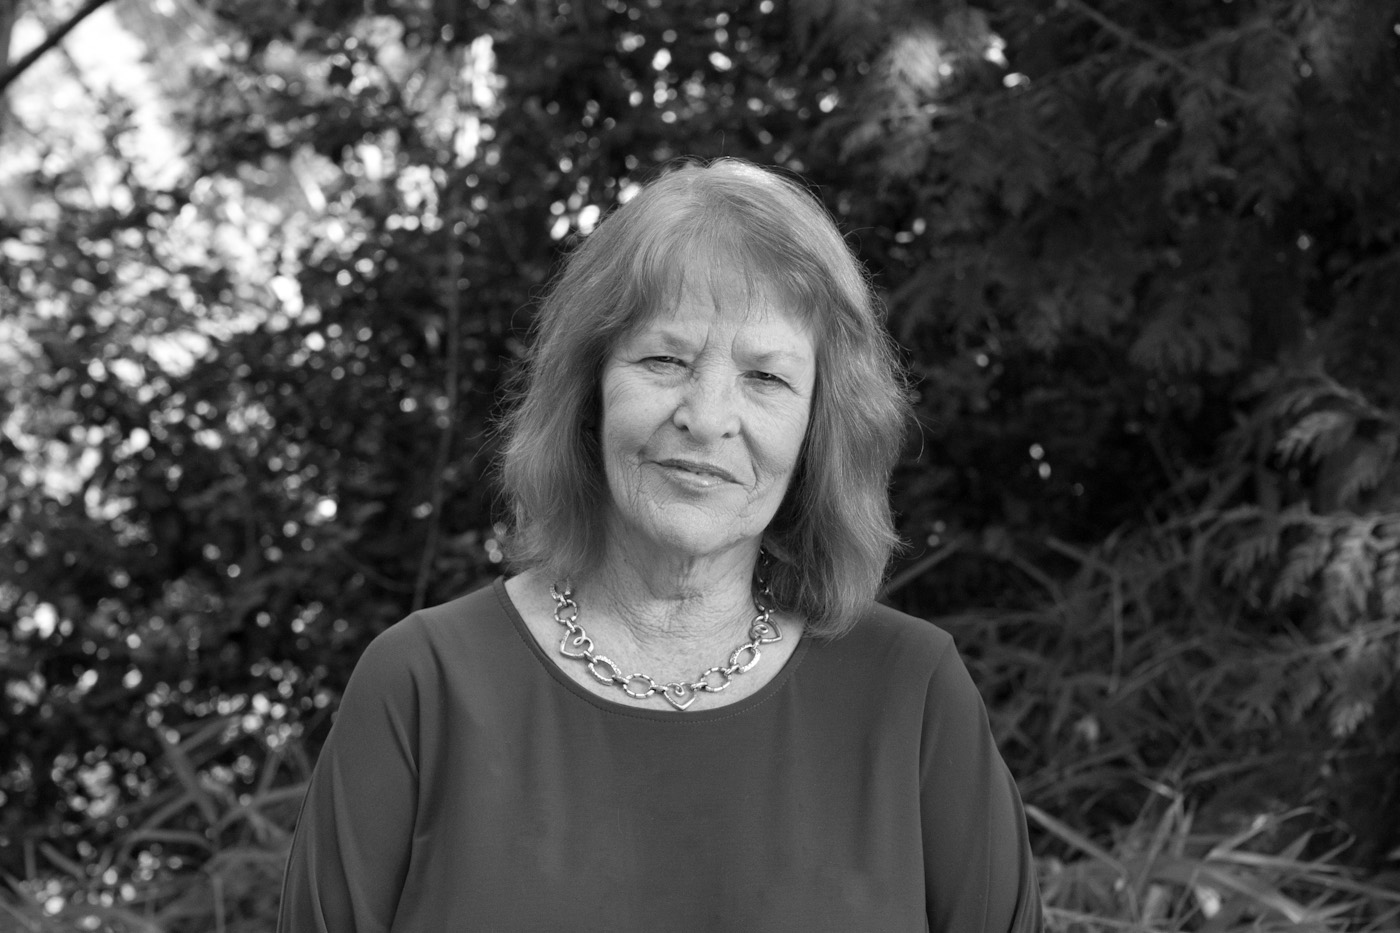 Judith Roche on Becoming a Writer and How Art Saves Lives   Keeper & Co.